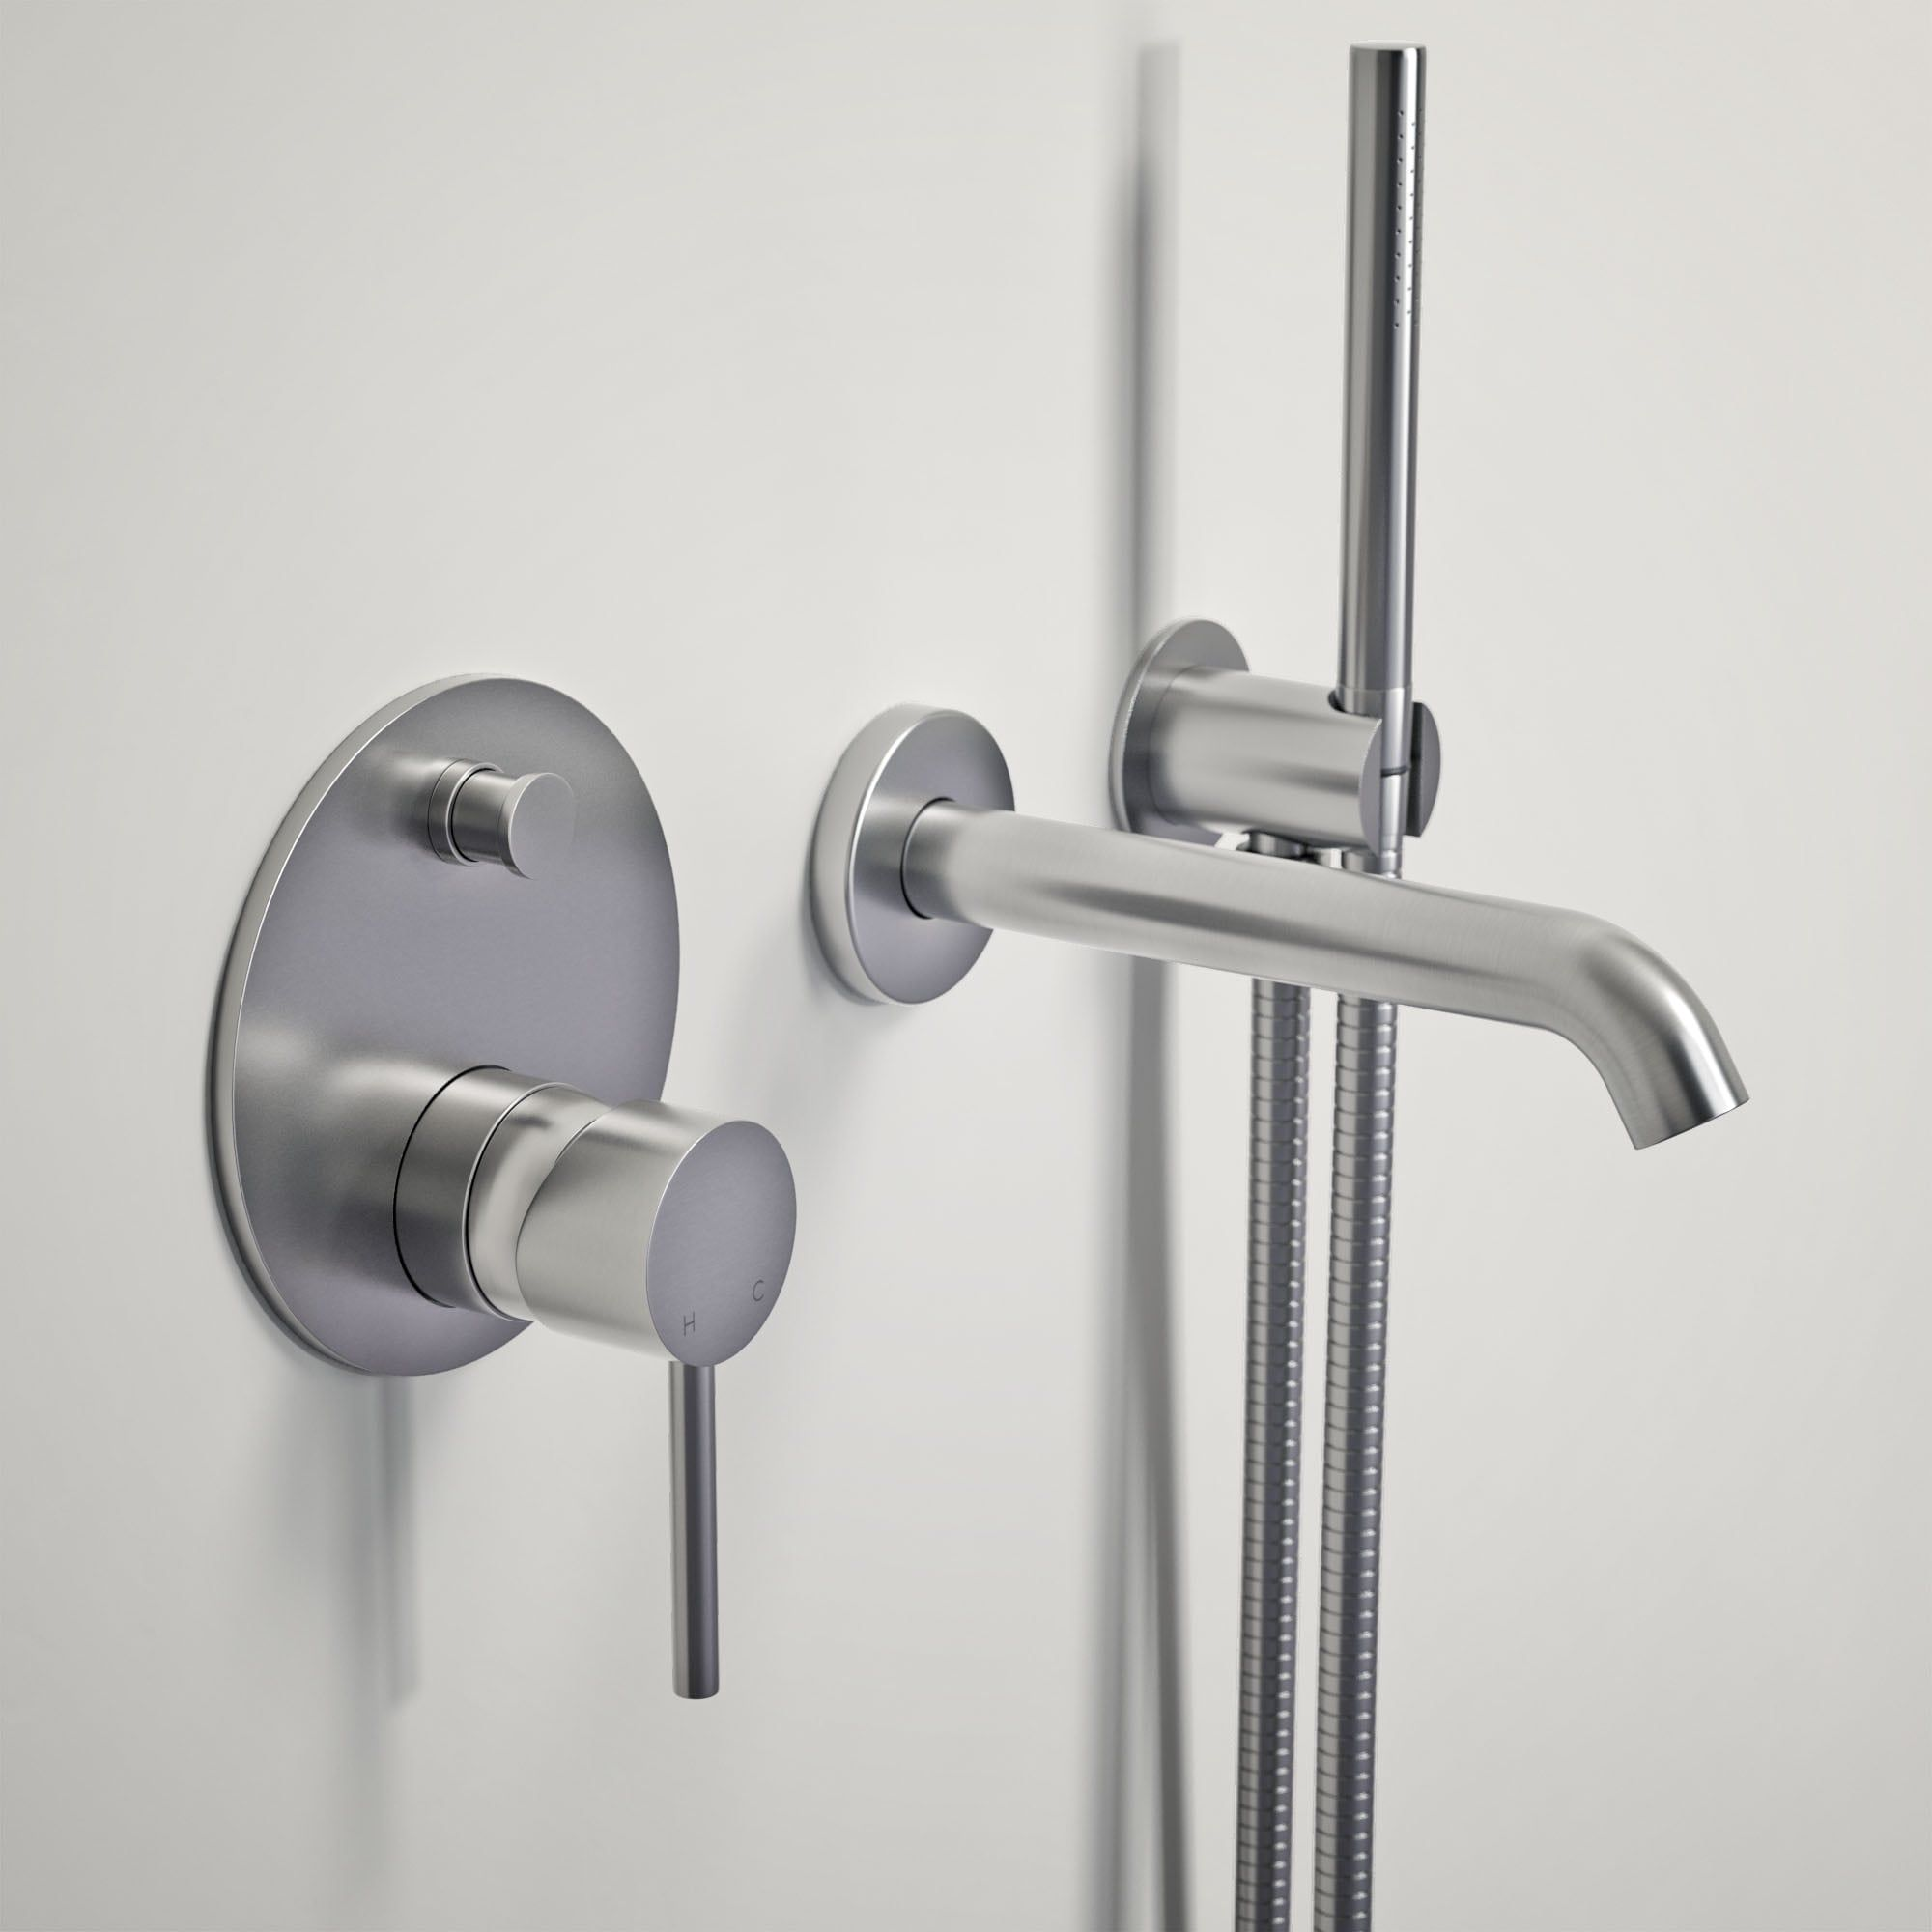 Pin By Lusso Stone On Lusso Luxe Wall Mounted Bath Tap With Valve And Handheld Shower Kit